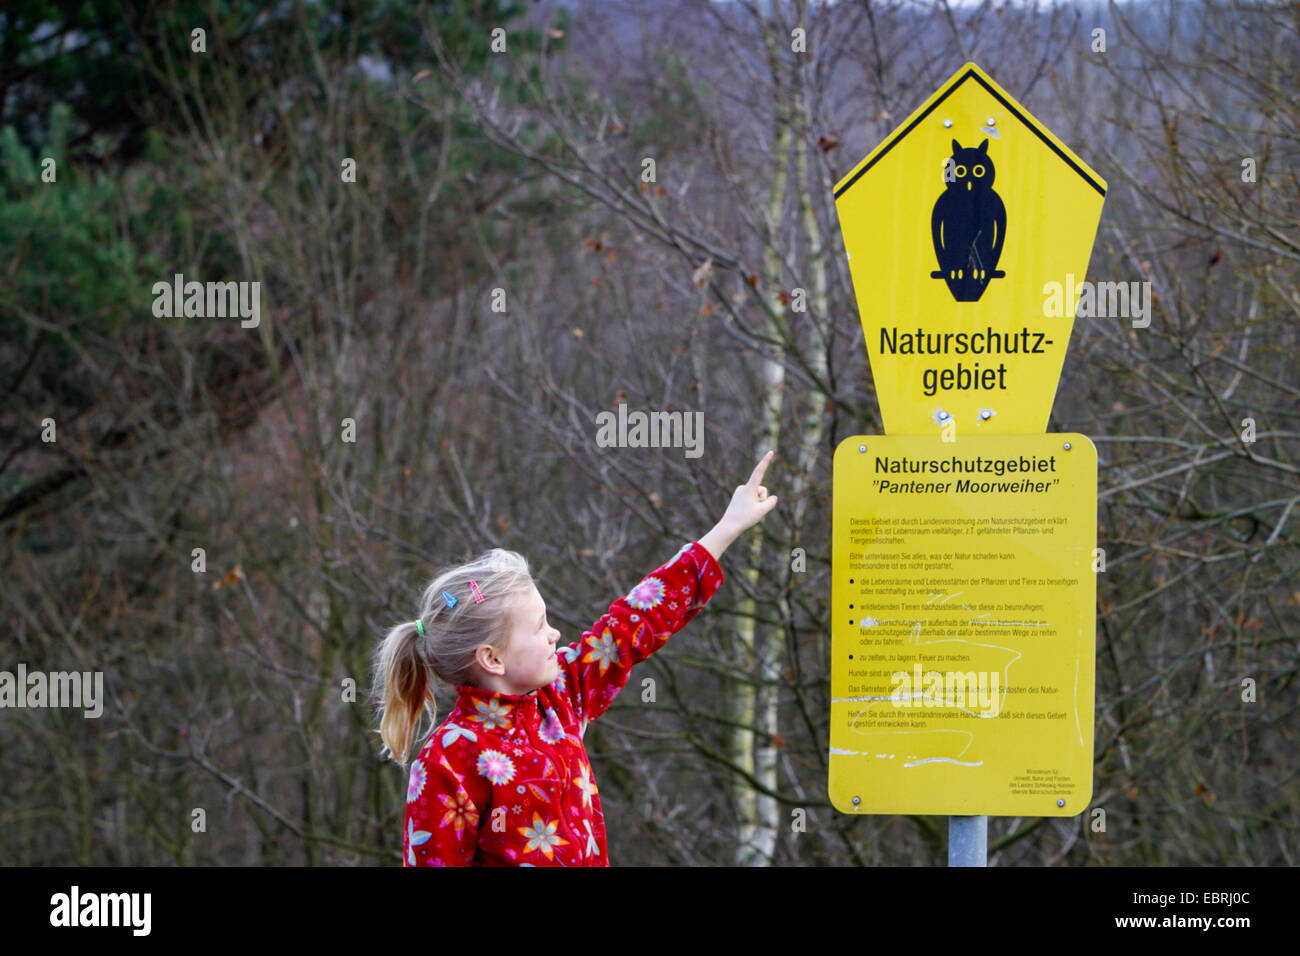 girl pointing at a conservation area sign Pantener Moorweiher, Germany - Stock Image